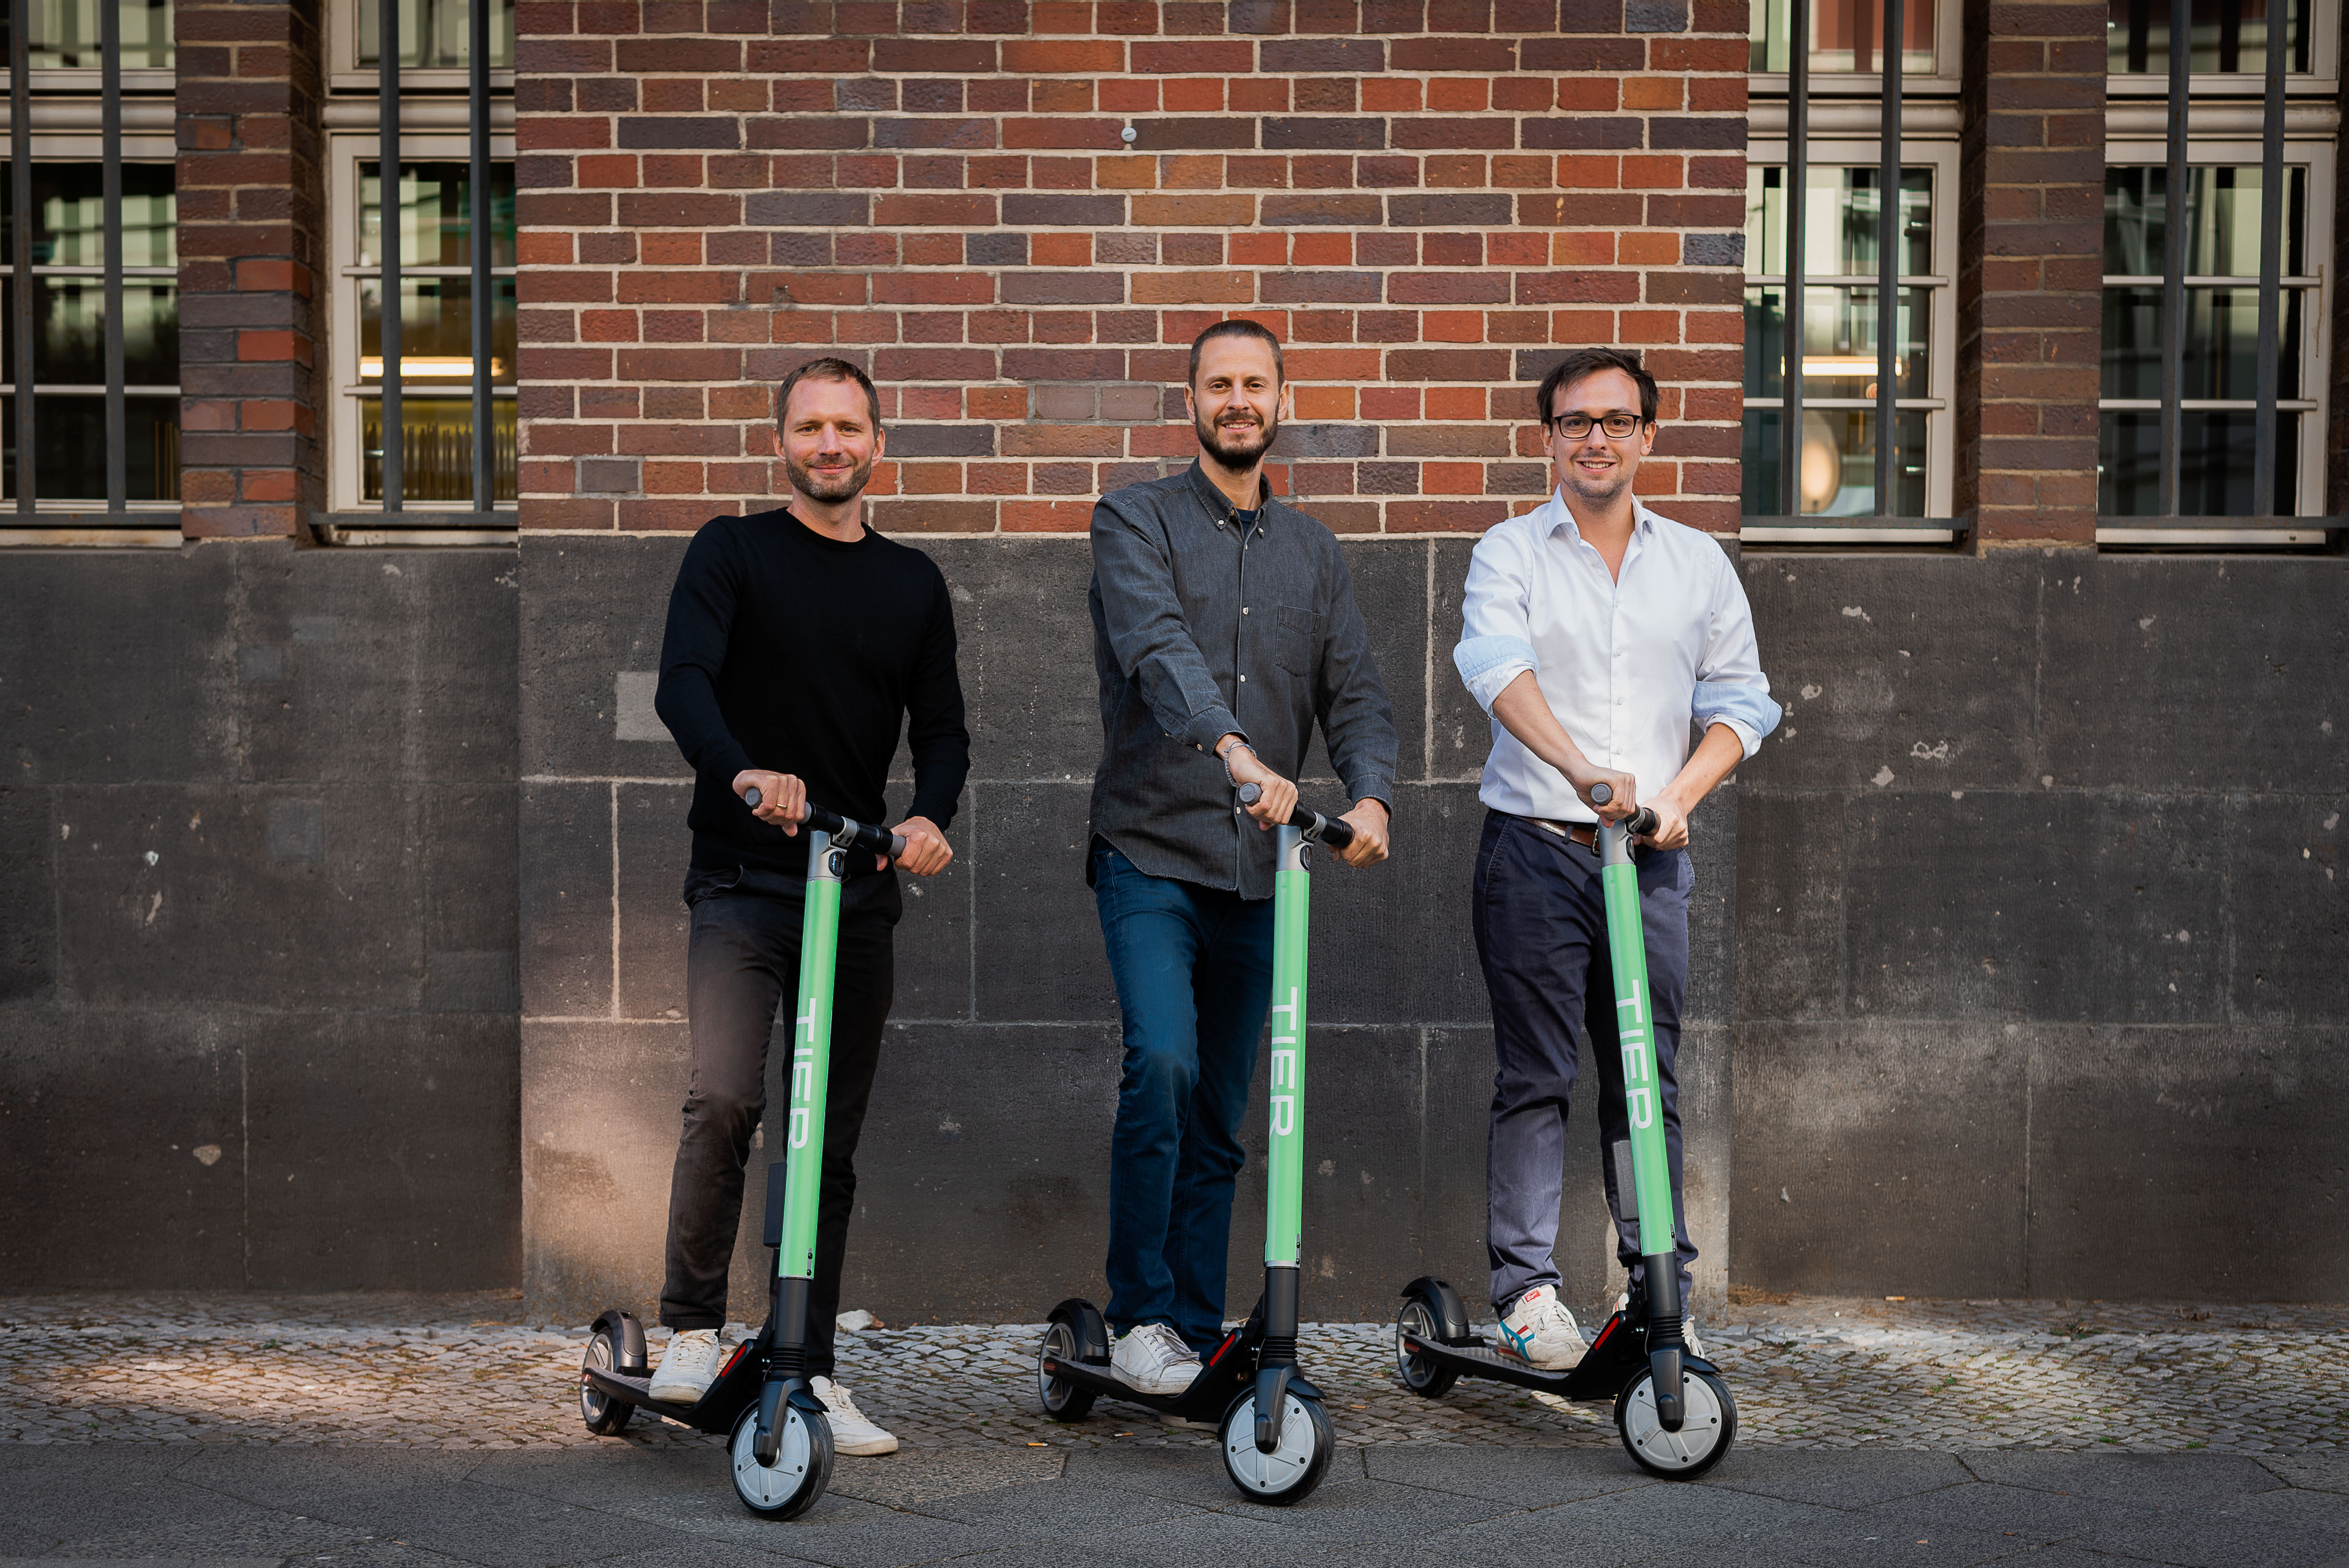 techcrunch.com - Natasha Lomas - Tier scoots off with 'first close' of its $200M Series D